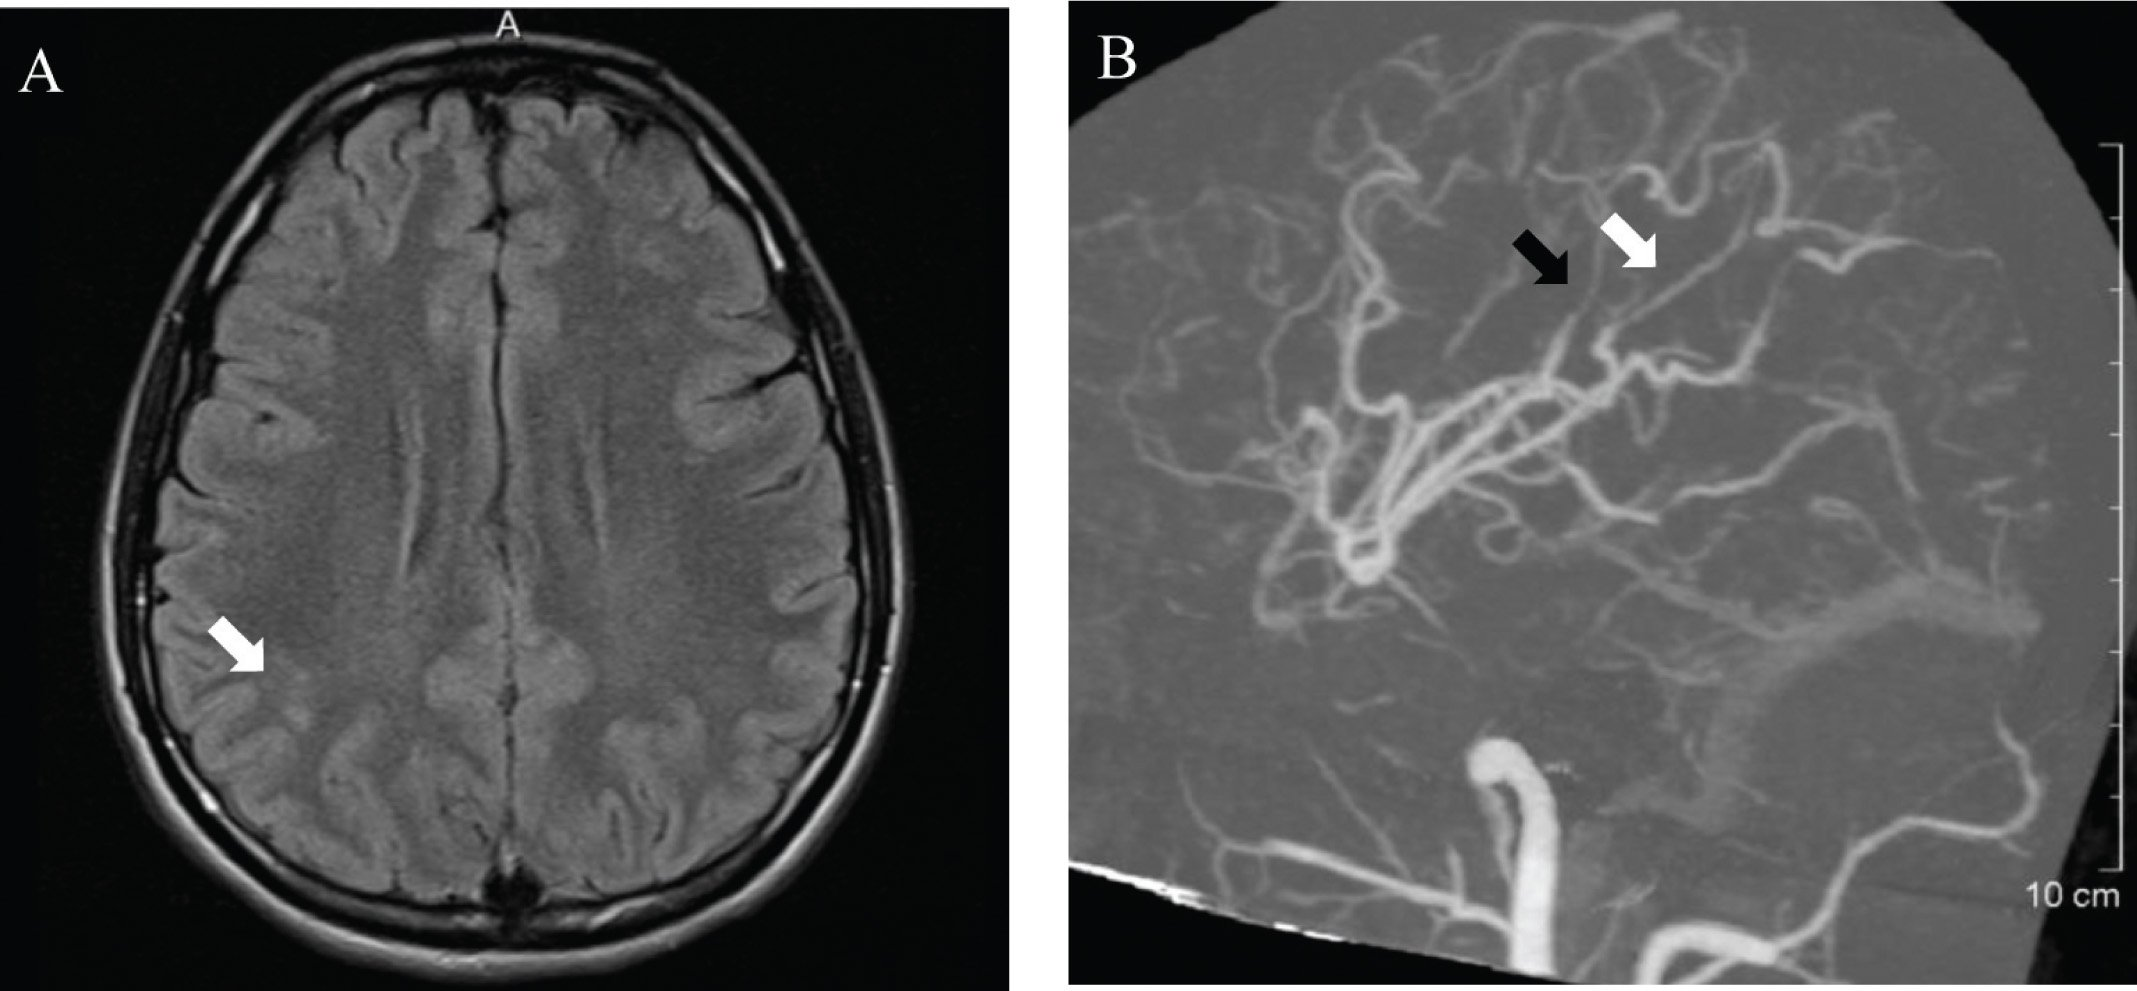 Brain imaging consistent with small vessel vasculitis. (A) Magnetic resonance imaging with ischemic demyelination in middle cerebral artery watershed zone (white arrow). (B) Computed tomography angiography demonstrates multiple vessels that show abnormal narrowing (black arrow) and irregularity (white arrow).